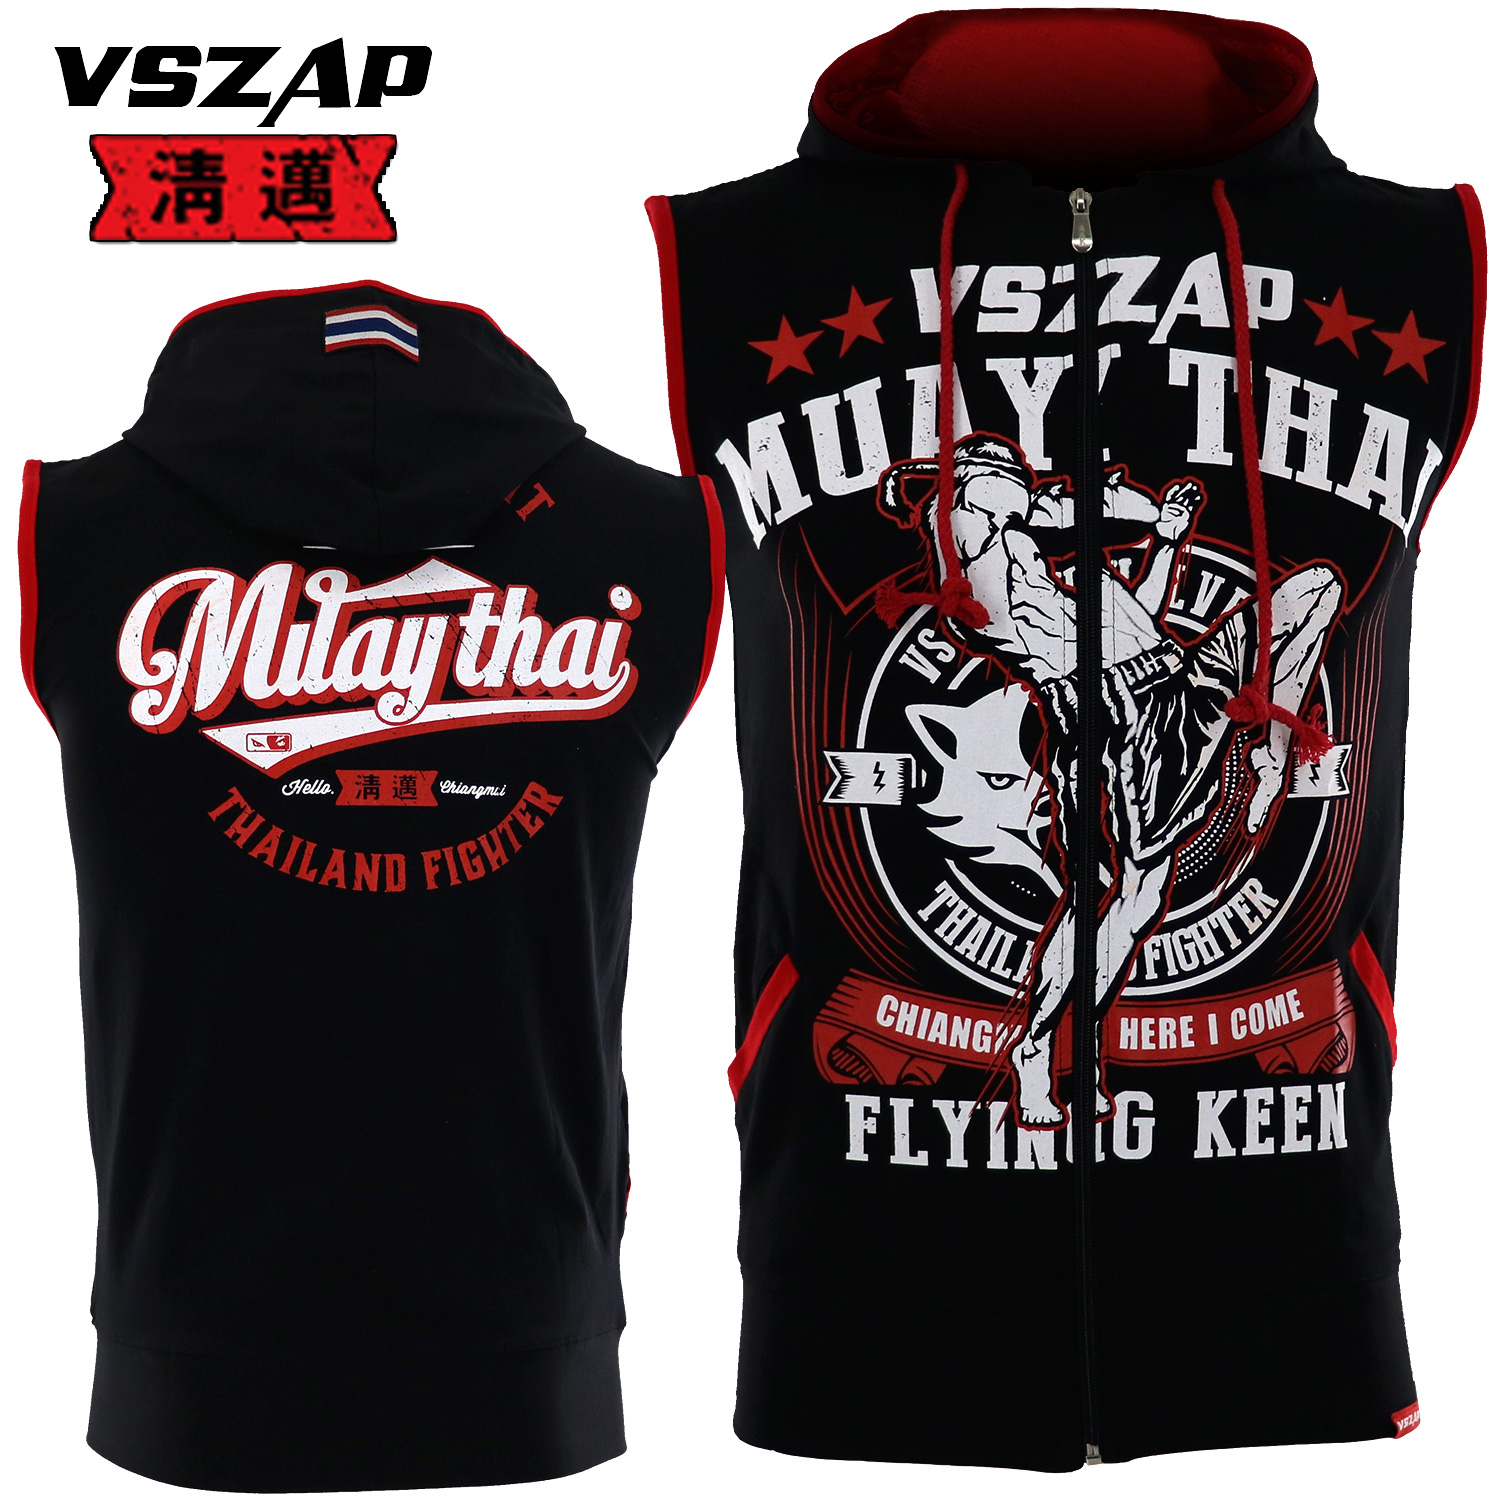 VSZAP New Sleeveless Men Boxing Hooded Sweatshirt MMA POWER Team Fight Wear Tiger Muay Thai Tops Tank